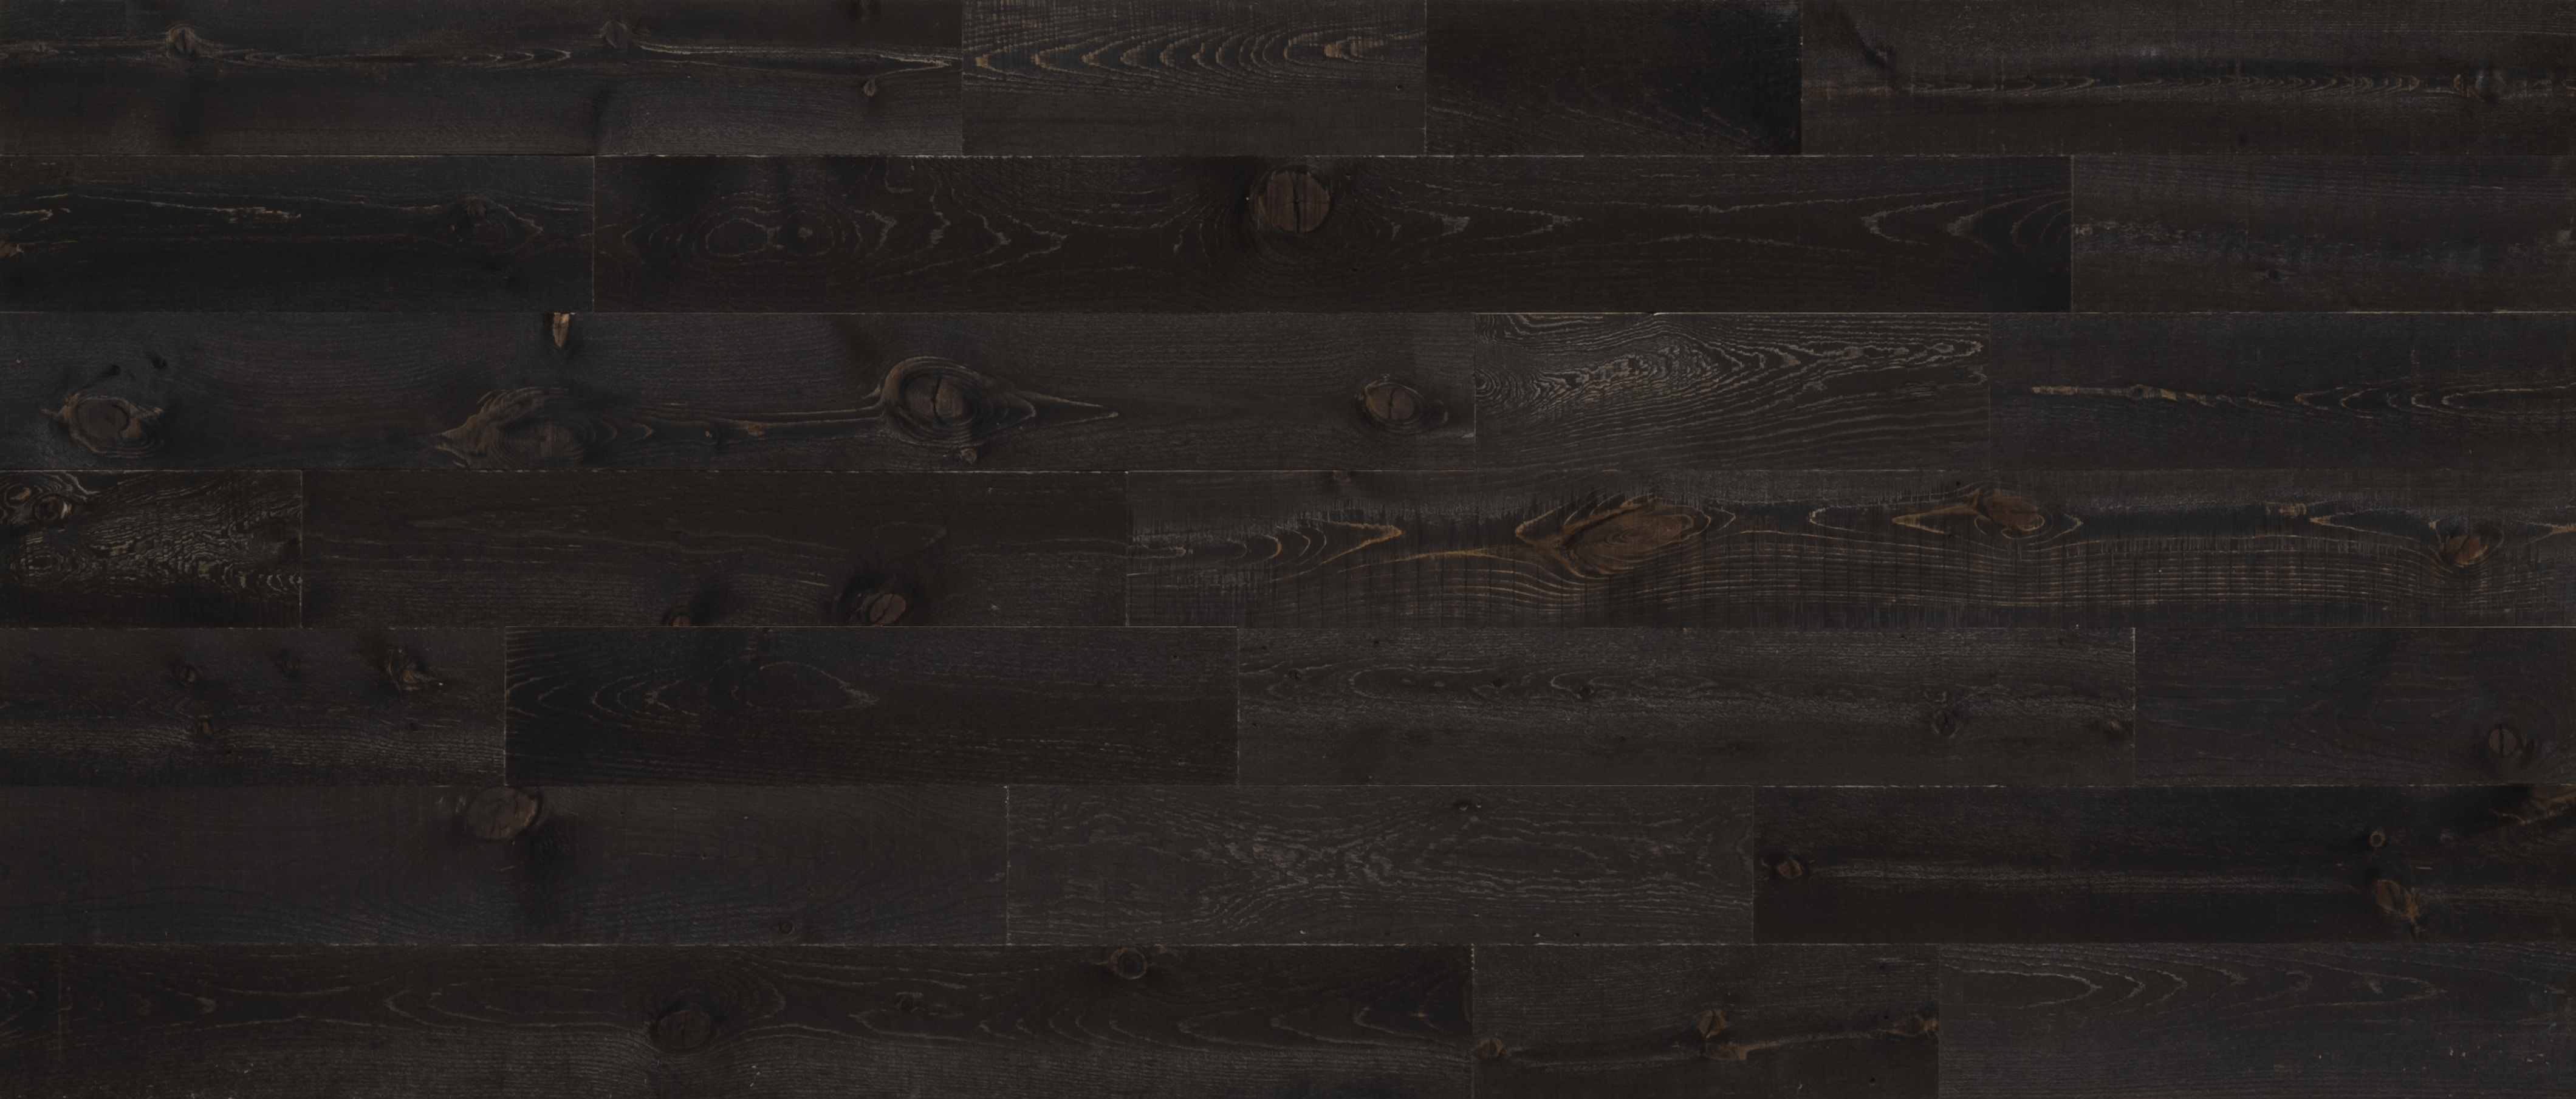 Stikwood Reclaimed Onyx material explorer | real reclaimed barnwood pine peel and stick wood wall and ceiling planks with dark, black, ebony, and brown colors.